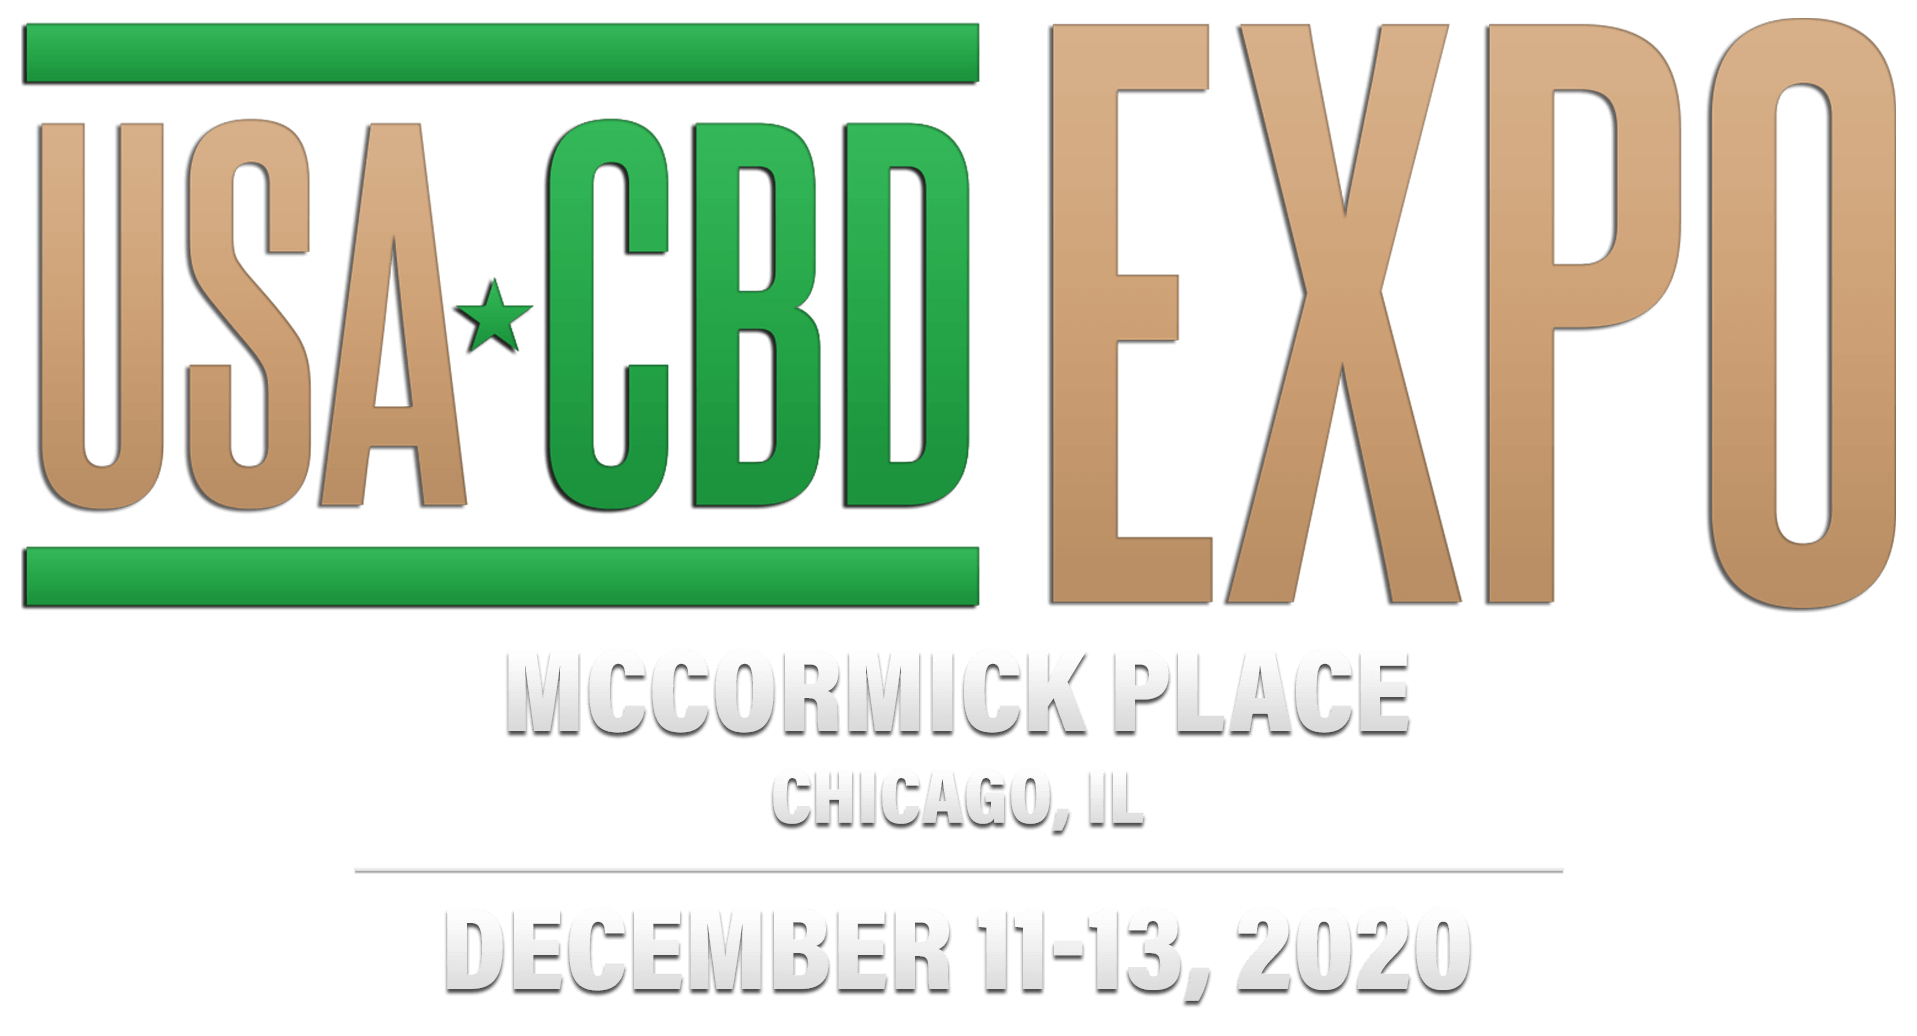 USA-CBD-EXPO---Main-Page-Headers-ChicagoIL.png